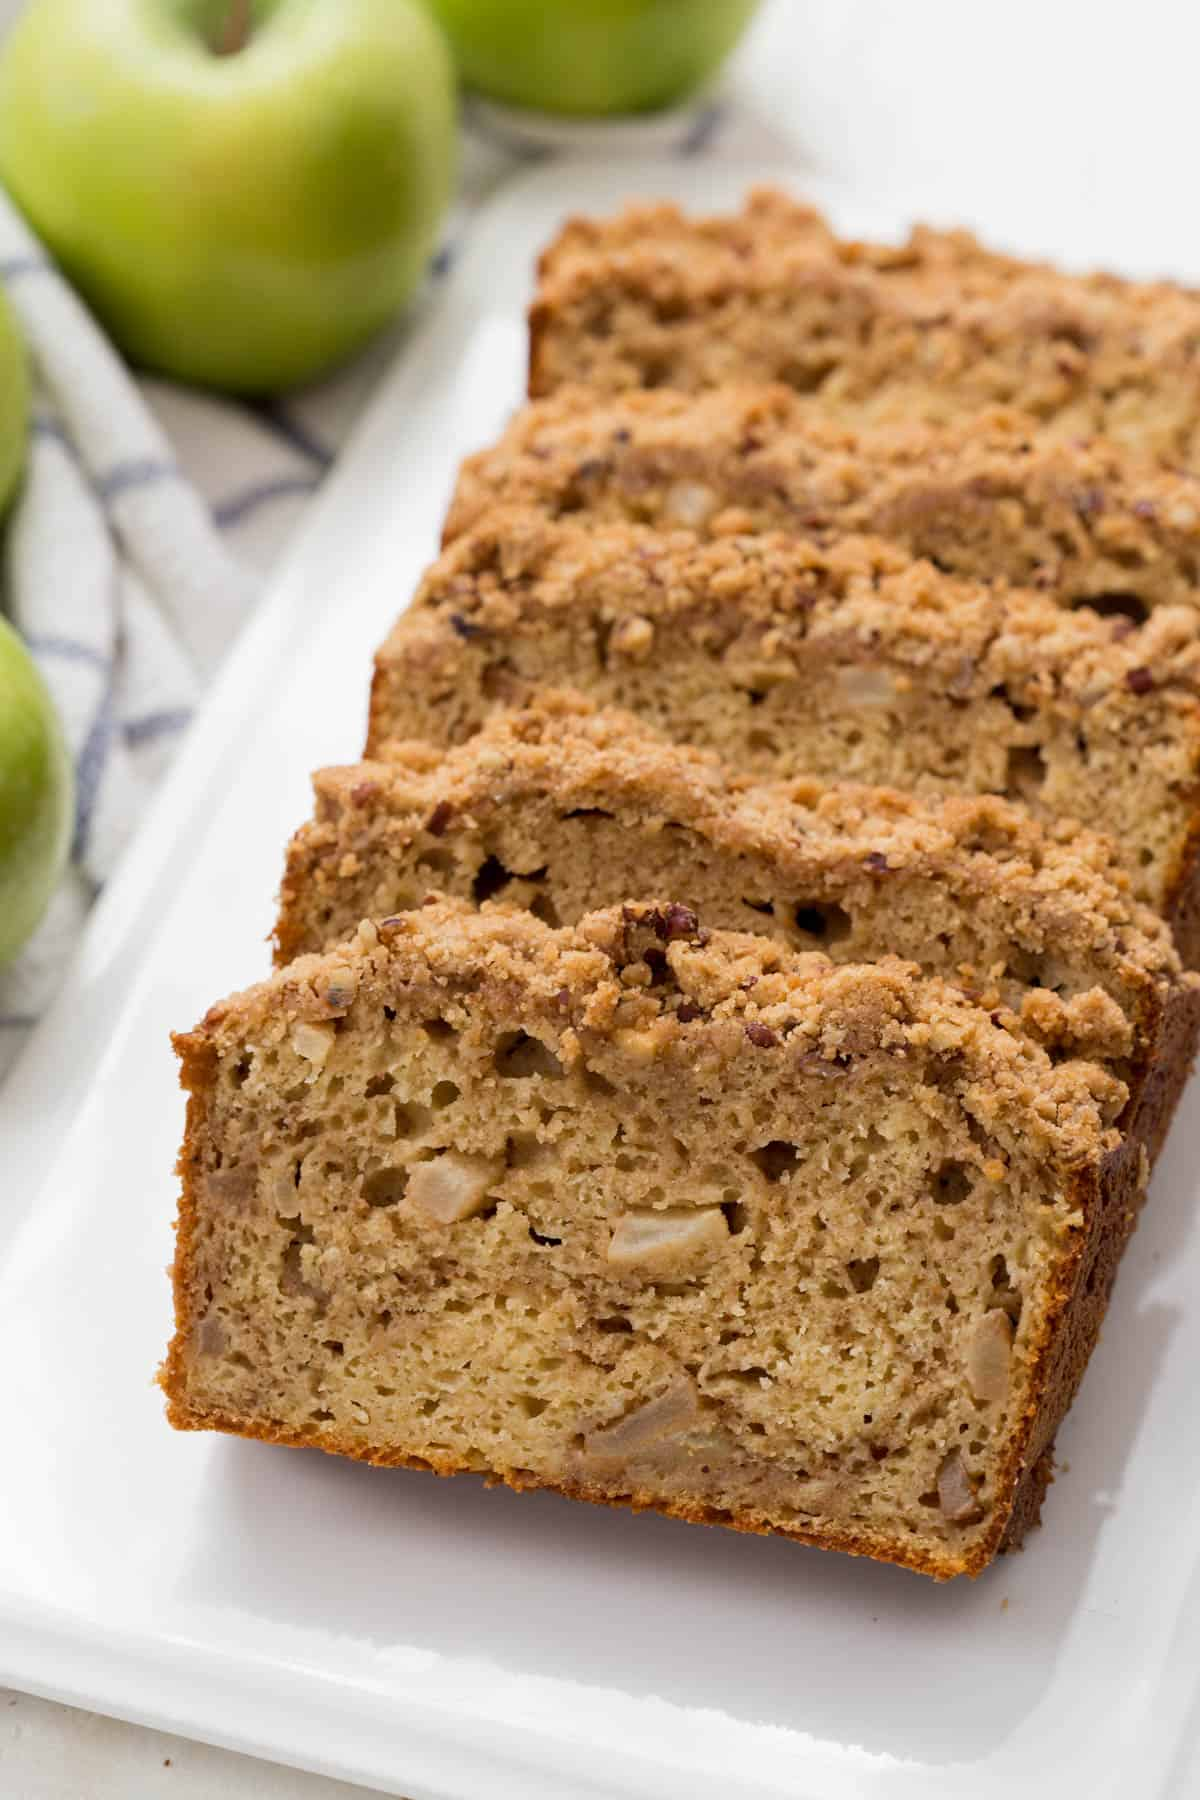 five slices of apple cinnamon bread on a white plate